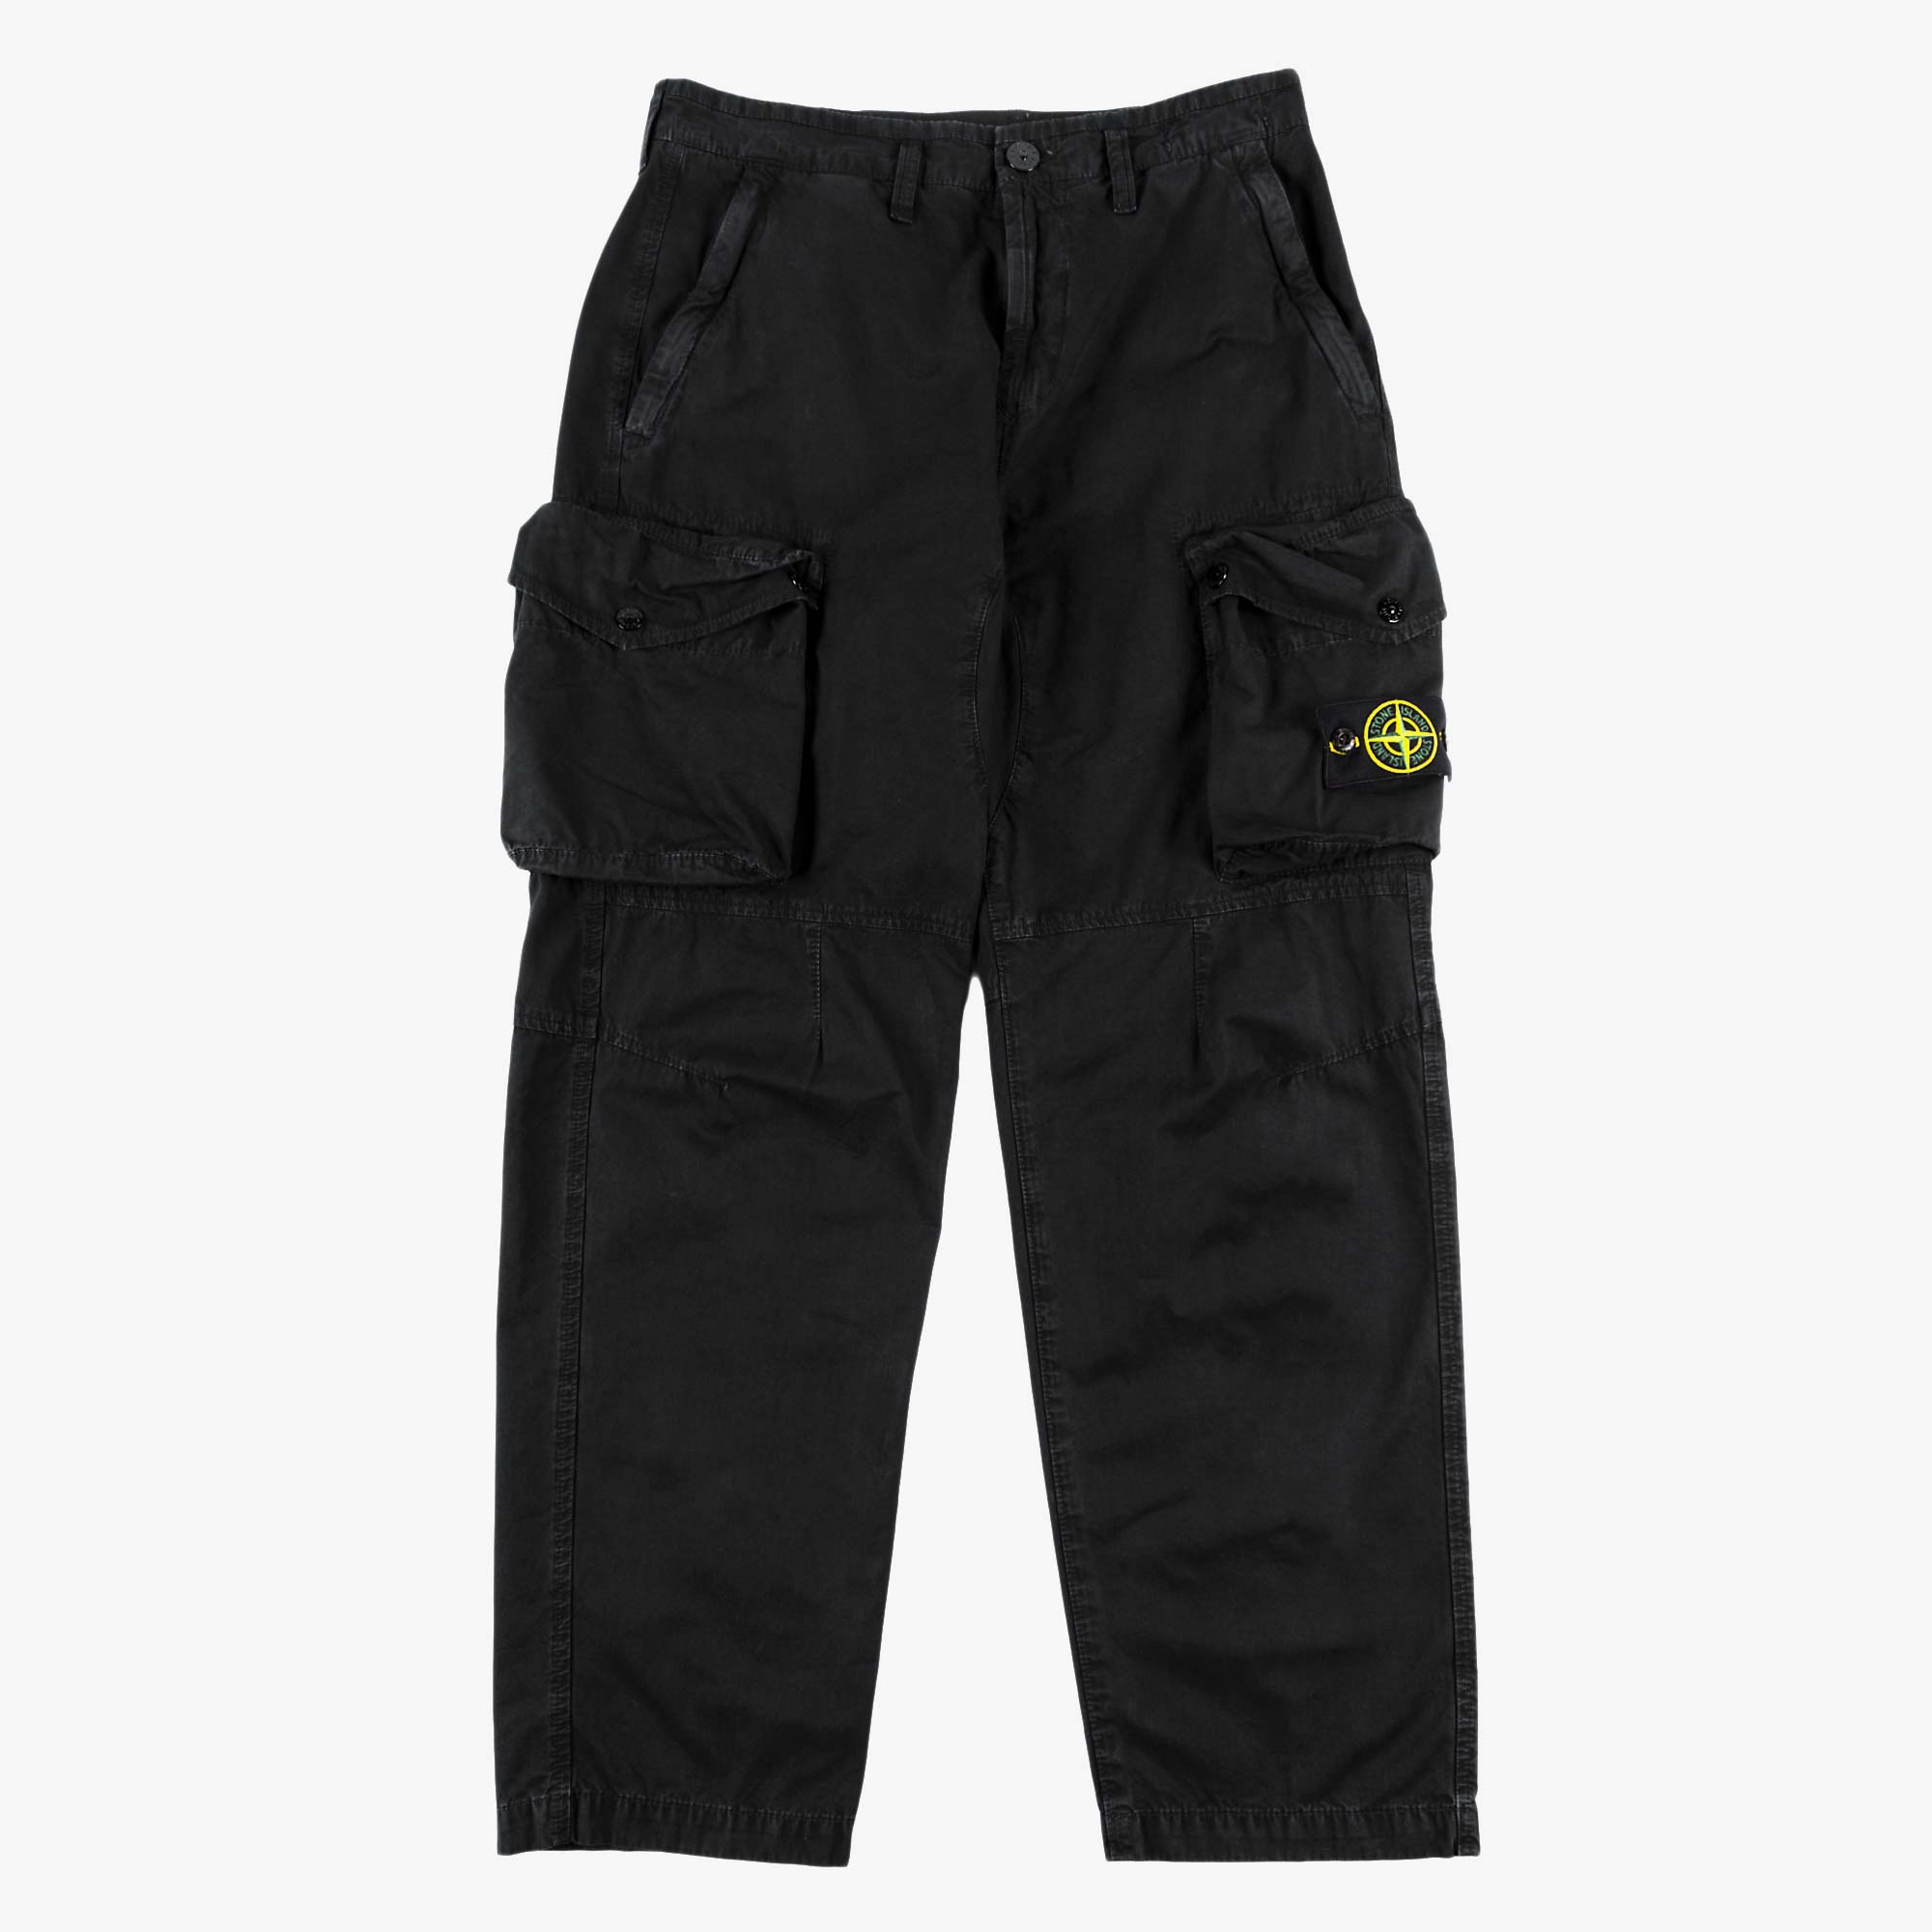 Stone Island T.CO Old Effect Cargo Pant 7415319WA - Black 1